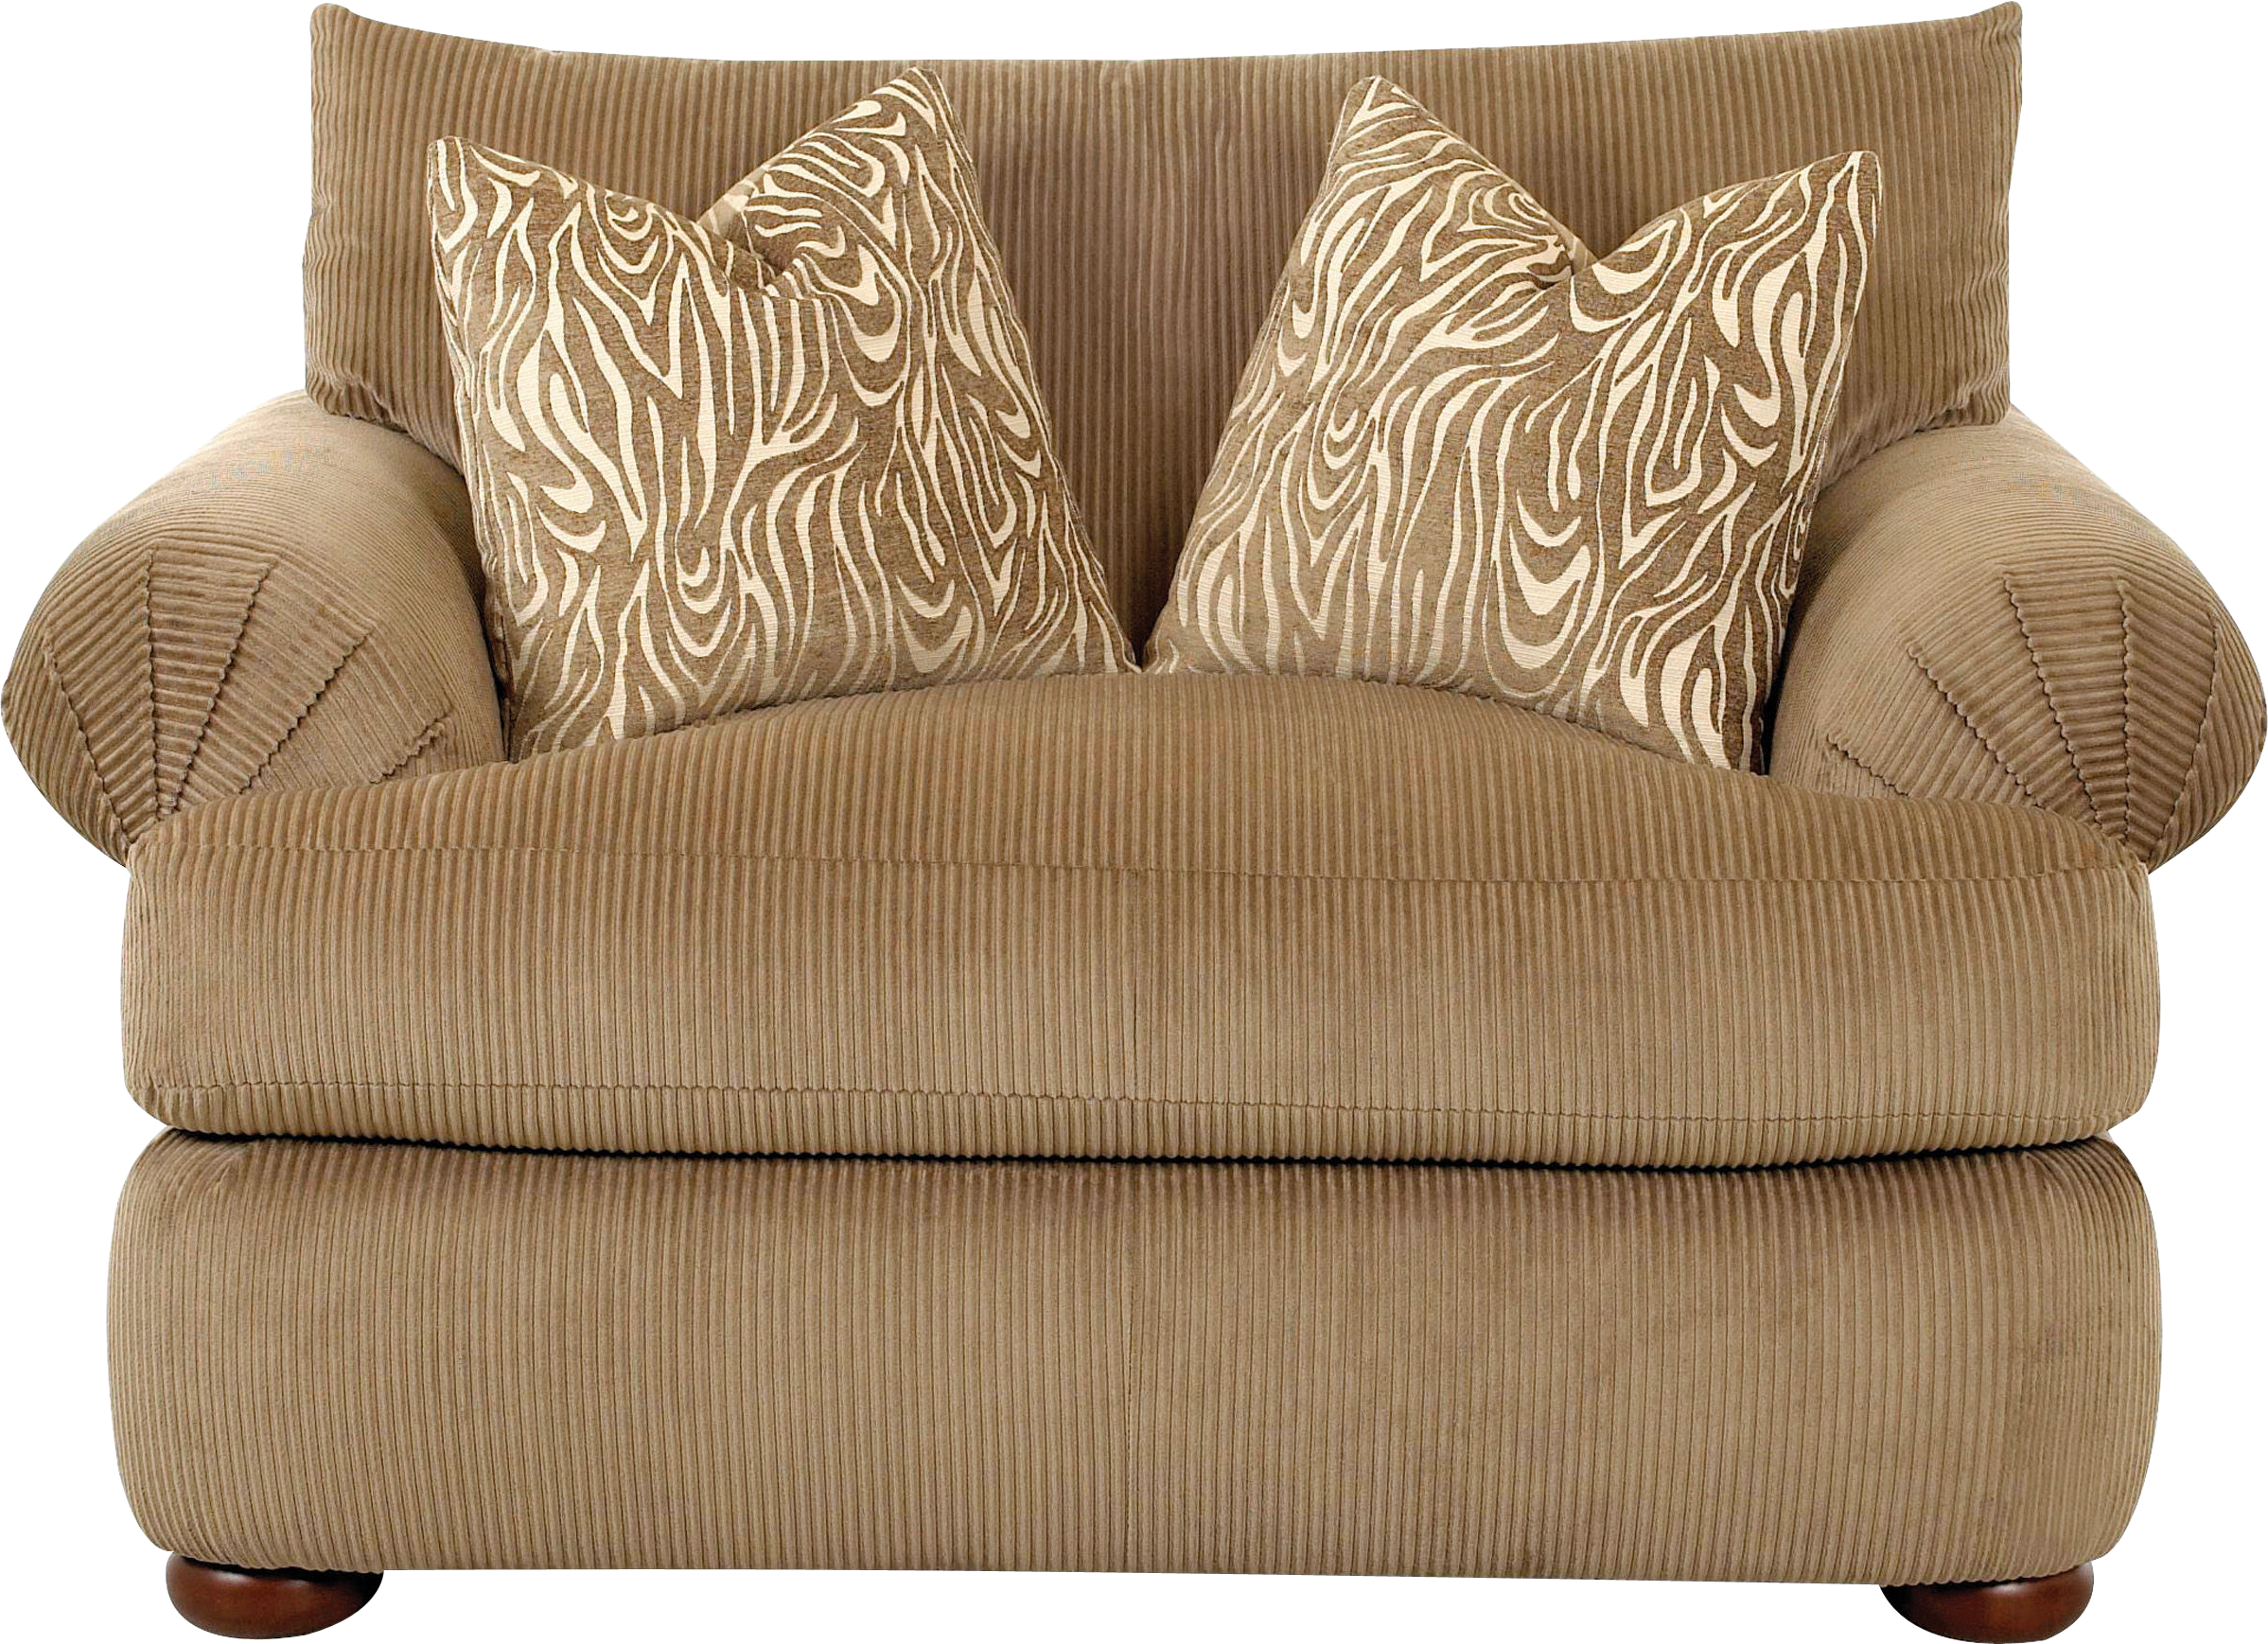 Furniture Clipart Single Couch Furniture Single Couch